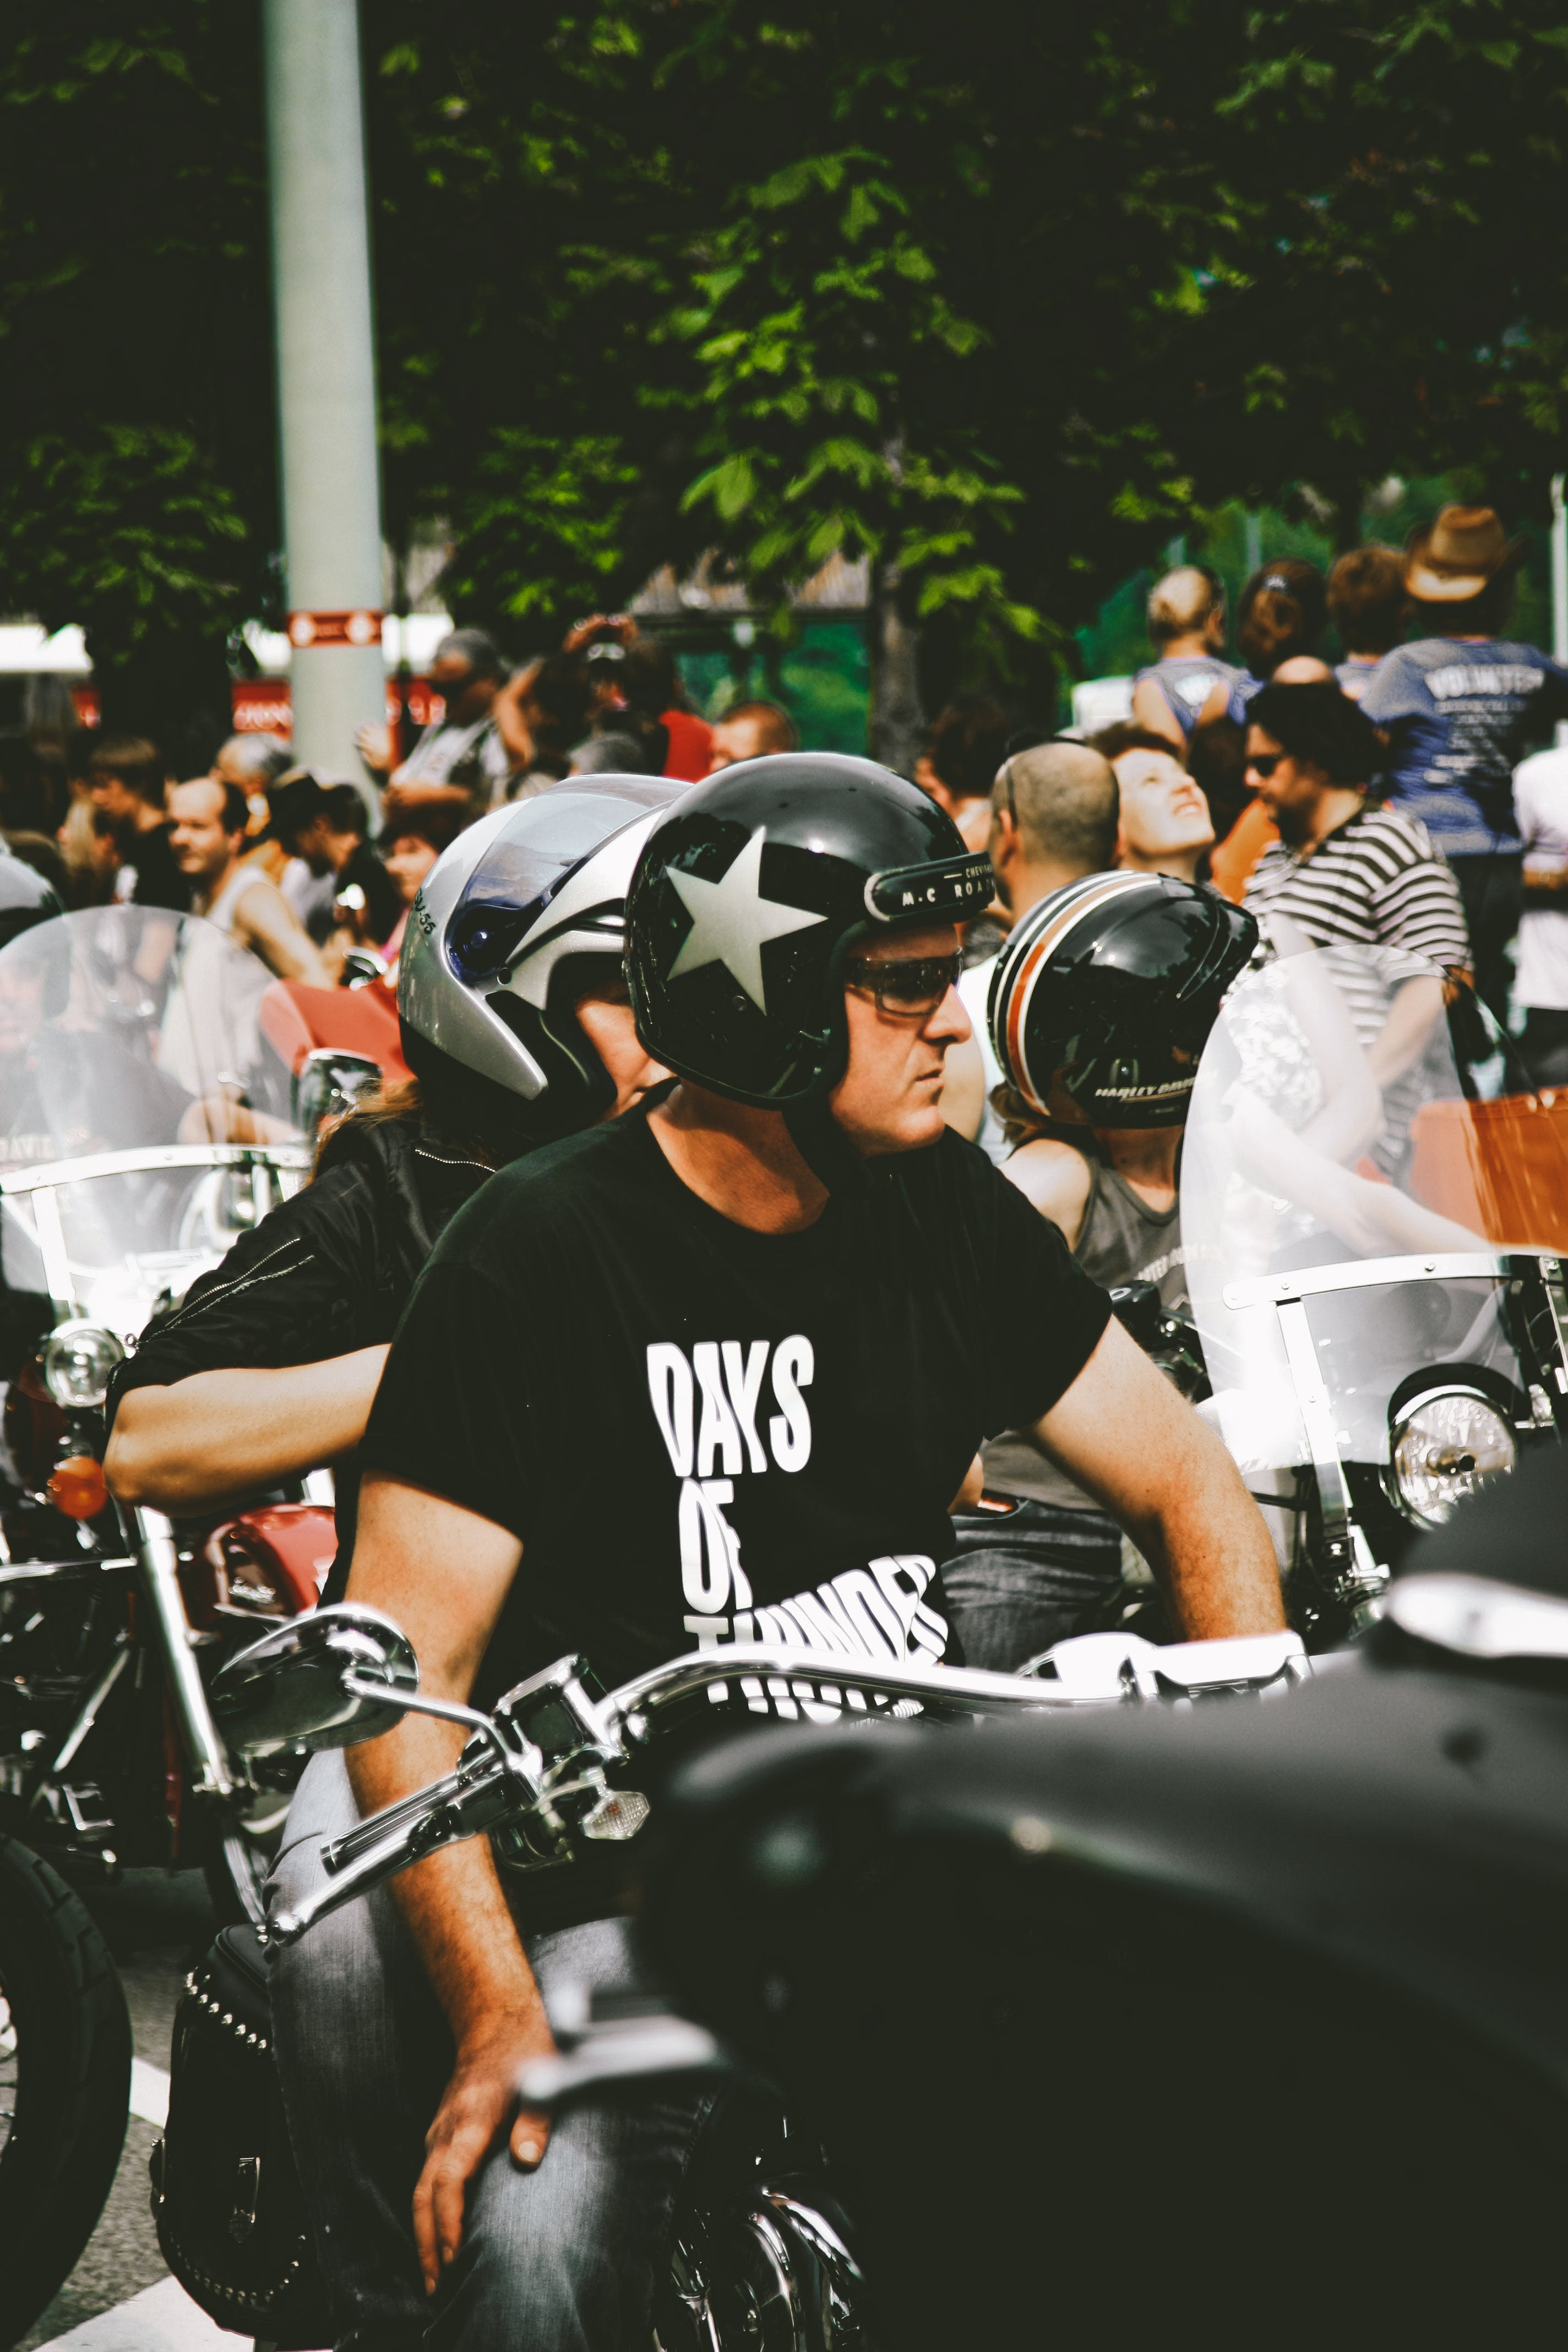 Photo of People Riding Motorcycle